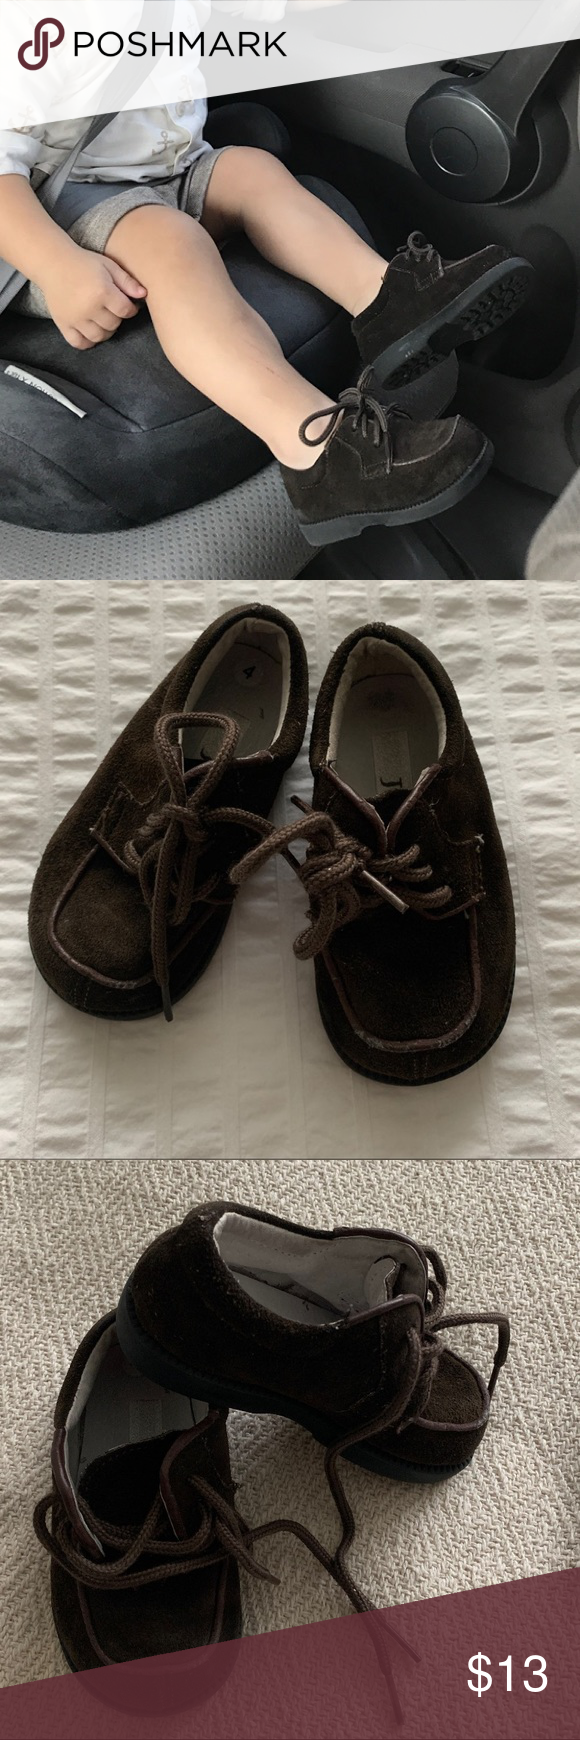 7b0add3373180 Josmo walk shoes ( baby boy) Size 4 Very cute shoes. Real leather(suede)  Josmo Shoes Baby   Walker